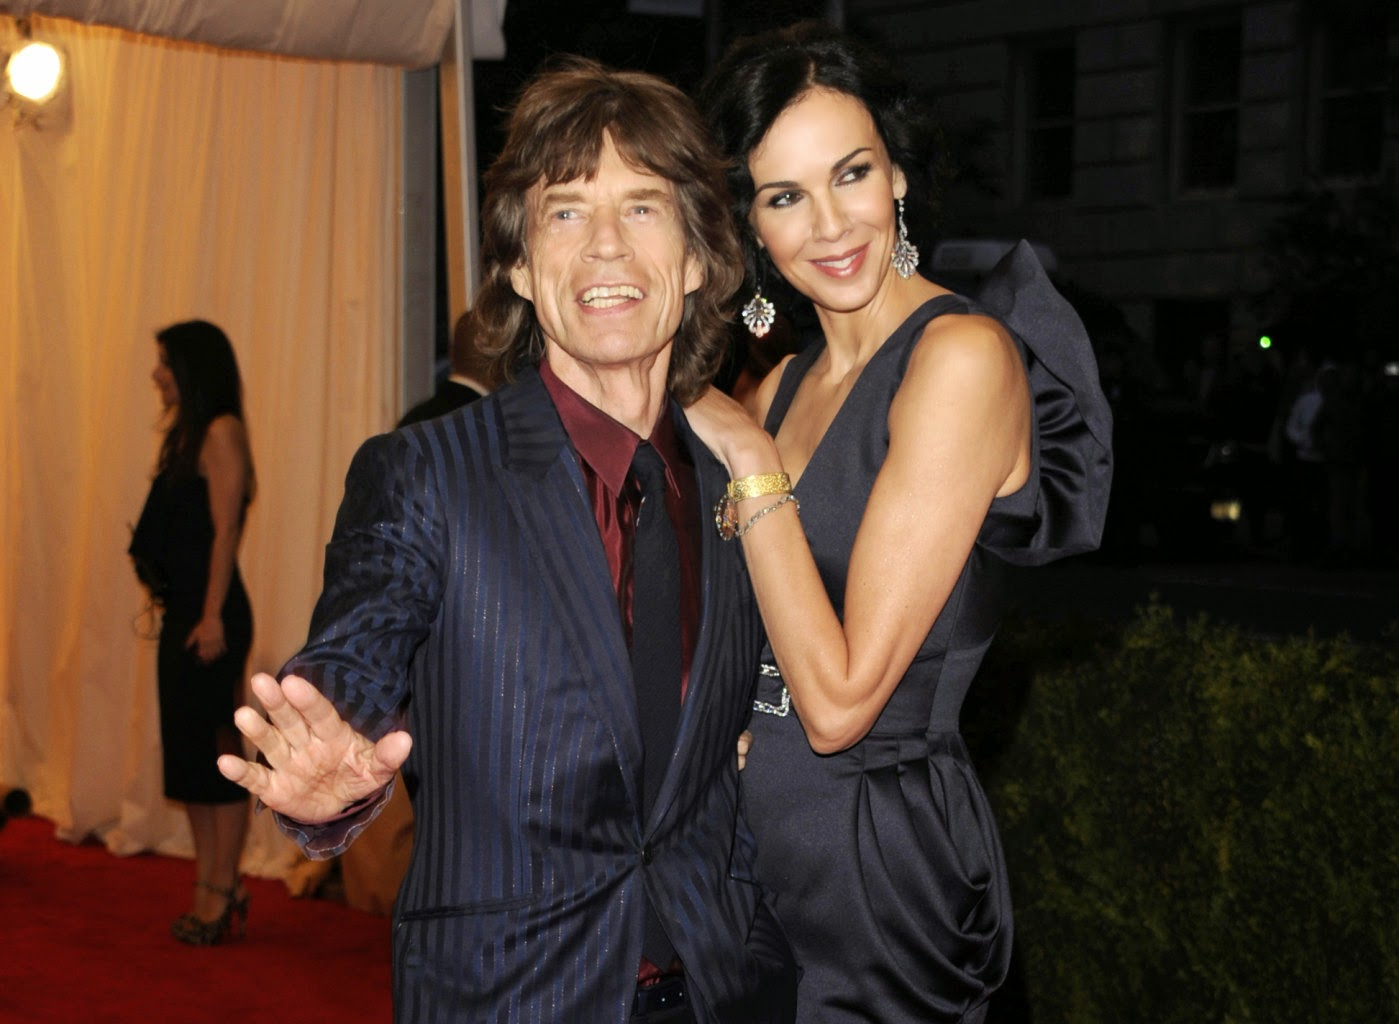 Mick Jagger's girlfriend L'Wren Scott found dead at 49